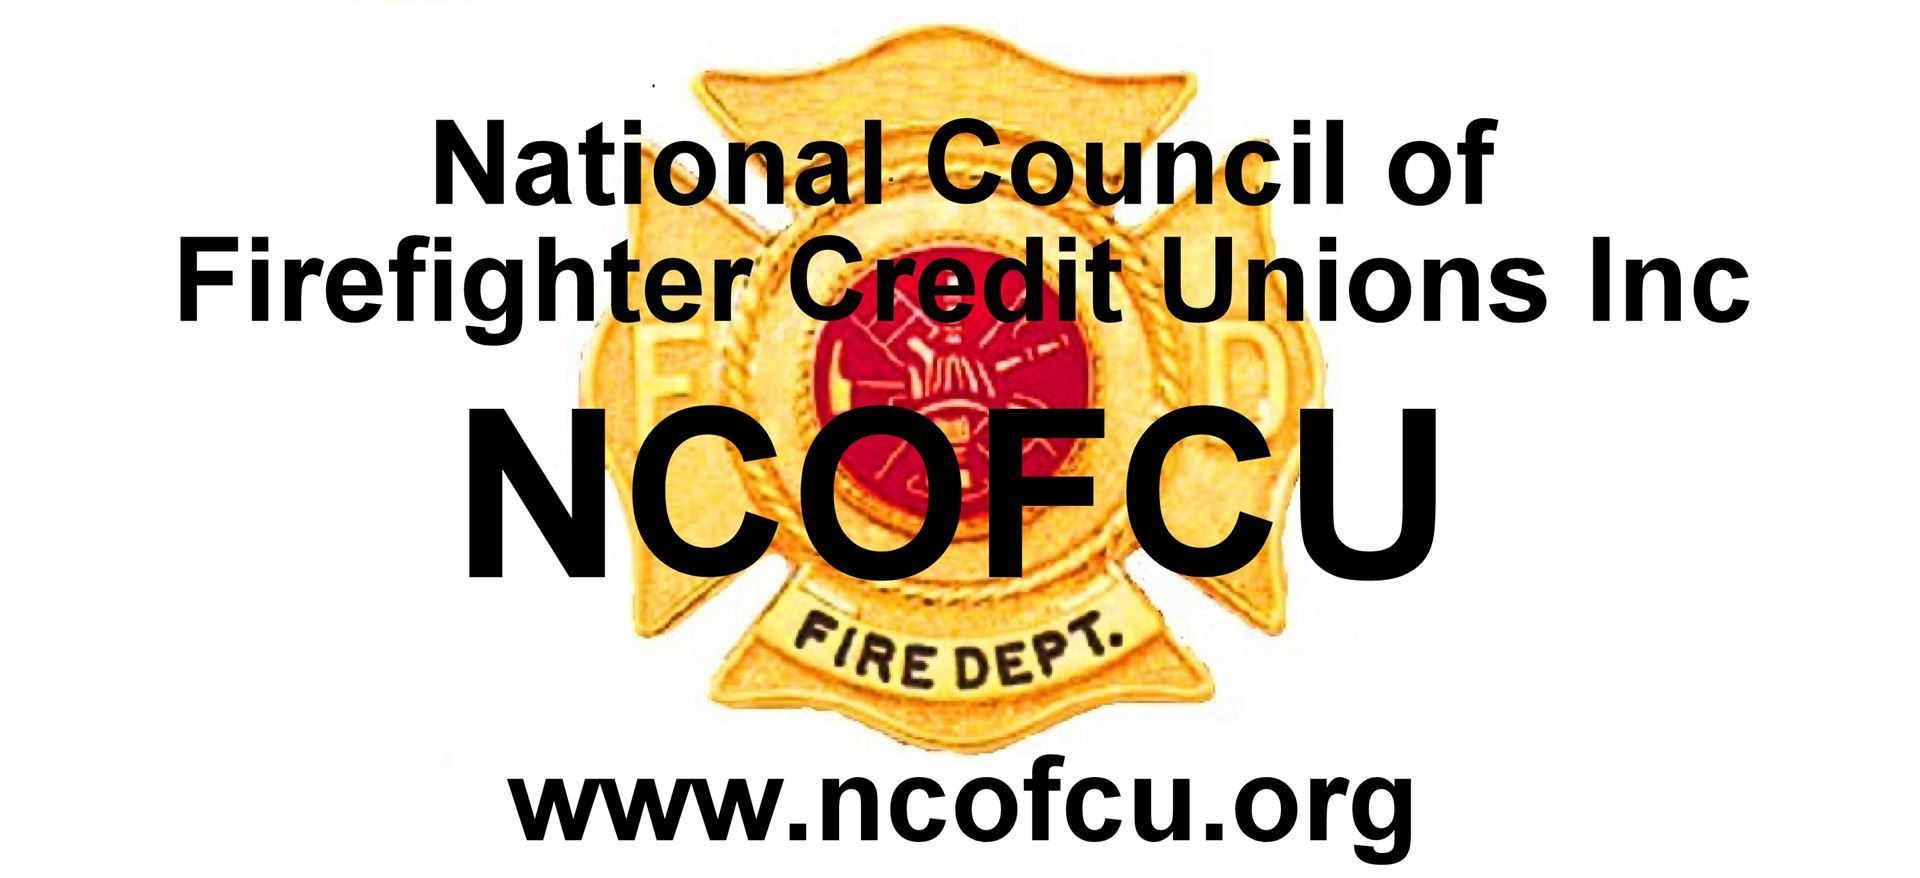 National Coalition of Firefighter Credit Unions, Inc.